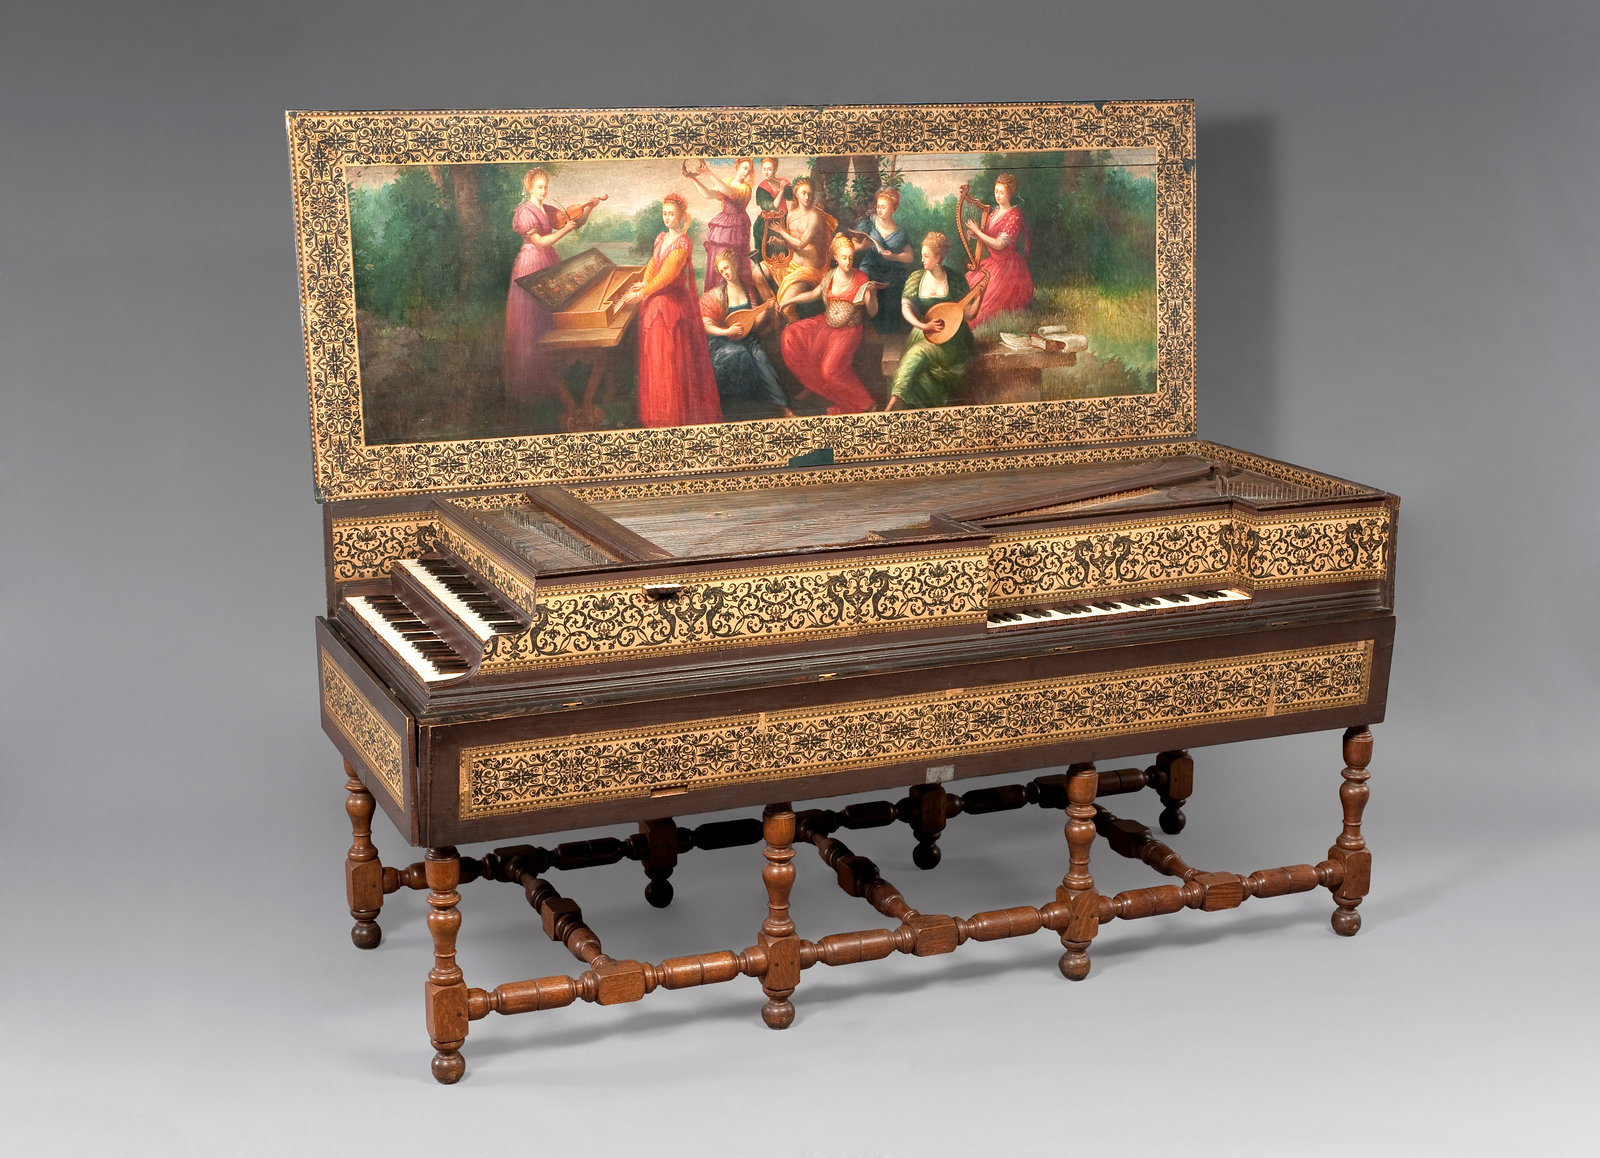 Clavecin à double clavier combiné à un virginal, 1619, Ioannes Ruckers, [One of the most curious instruments to have come out of the Ruckers workshop is undoubtedly this harpsichord with virginal. The rectangular sound-box houses both a two-manual harpsichord and a small virginal that is set on the curved side of the larger instrument. In accordance with Ruckers family tradition, the sides of the box are decorated with printed strips of paper and with depictions of sea horses, as well as stylized motifs.], Musical Instruments Museum, Brussels, In Copyright